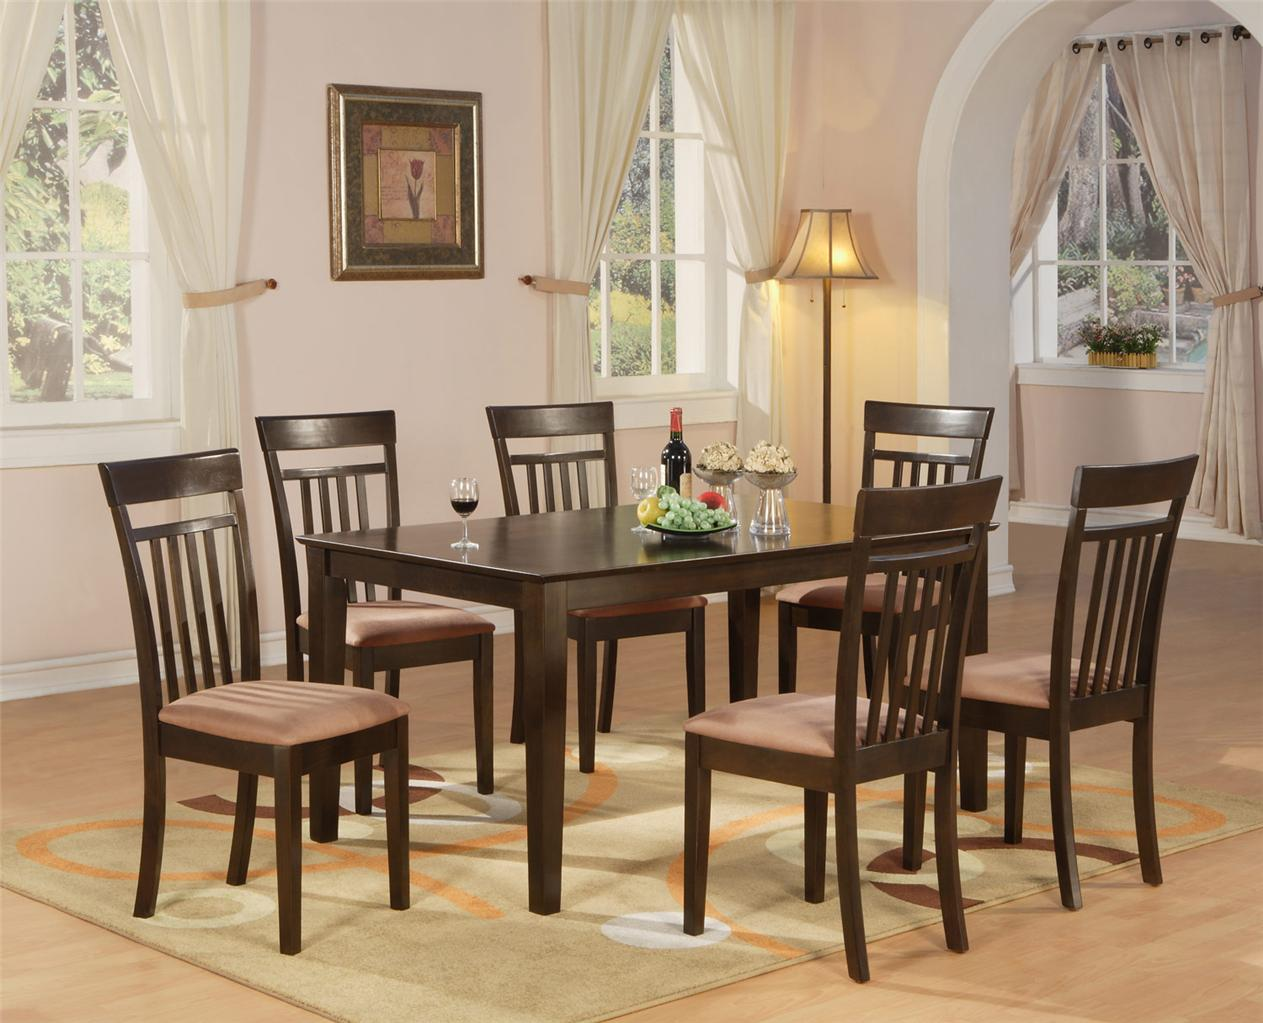 Excellent Dining Room Table Sets 1263 x 1023 · 145 kB · jpeg